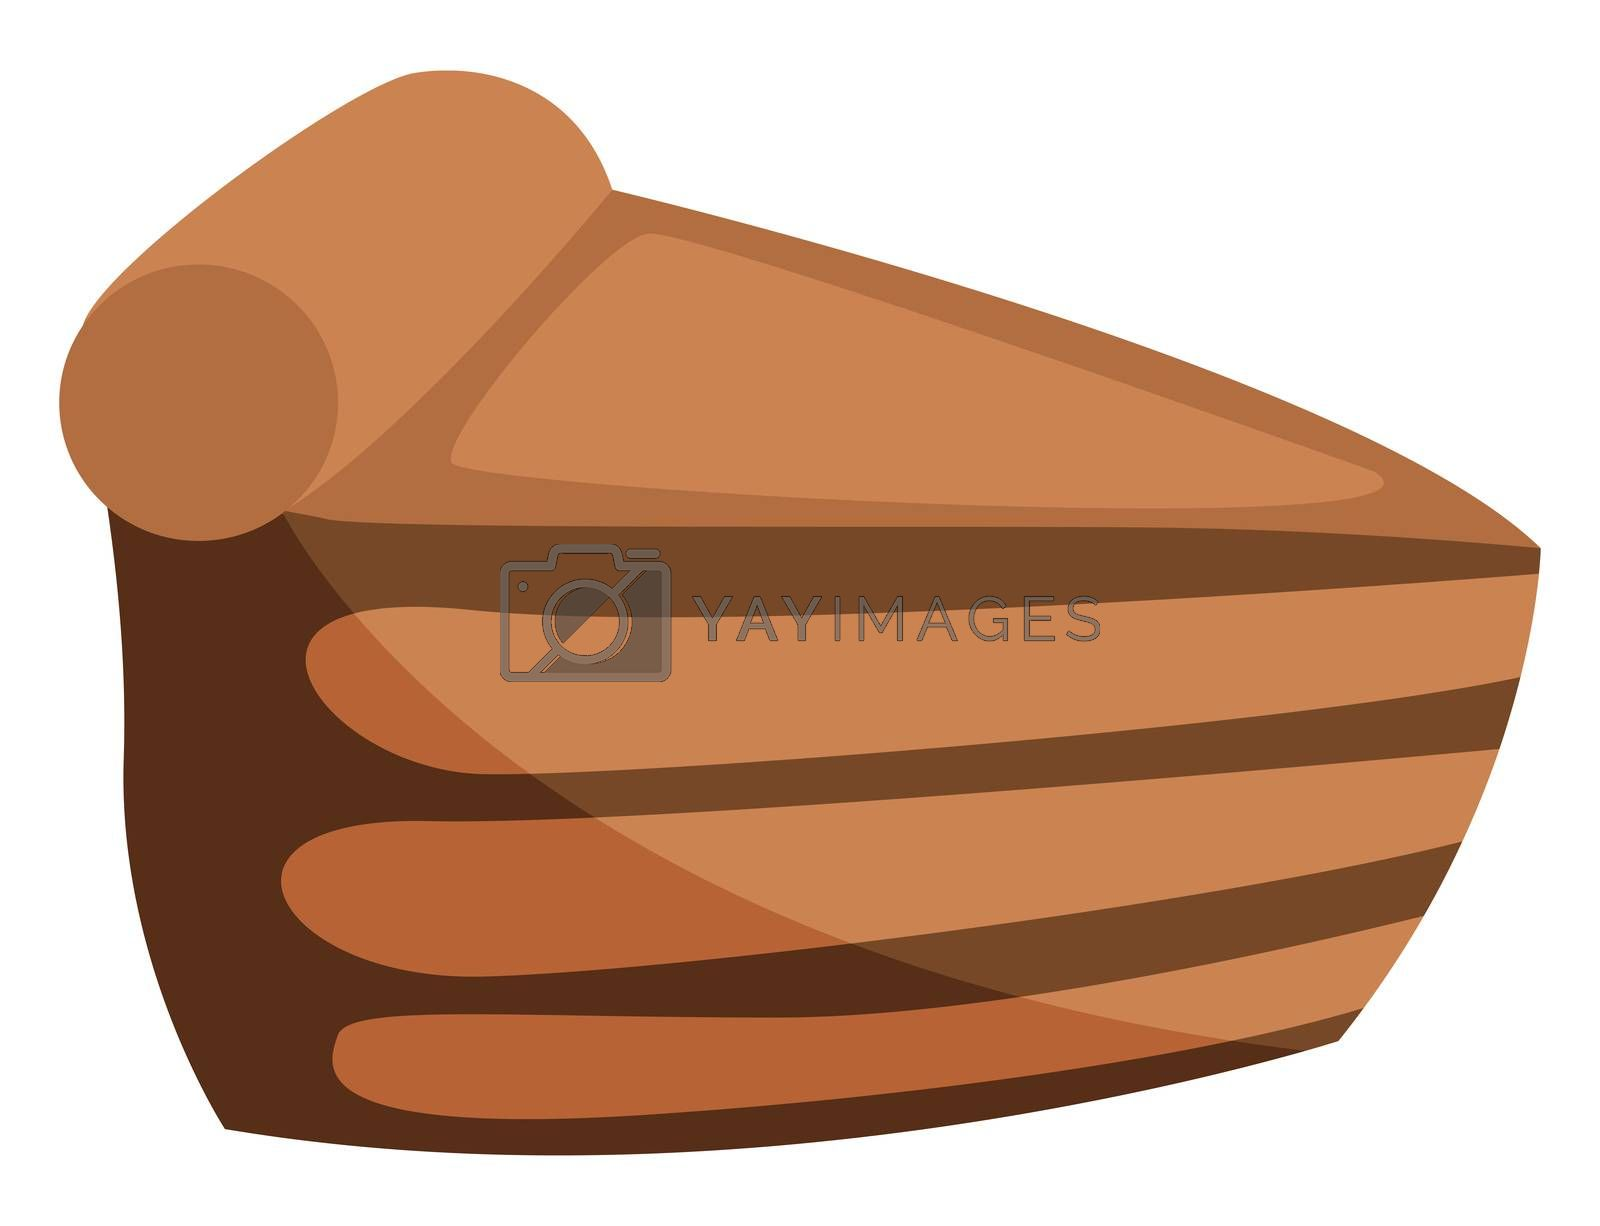 Pastry, illustration, vector on white background